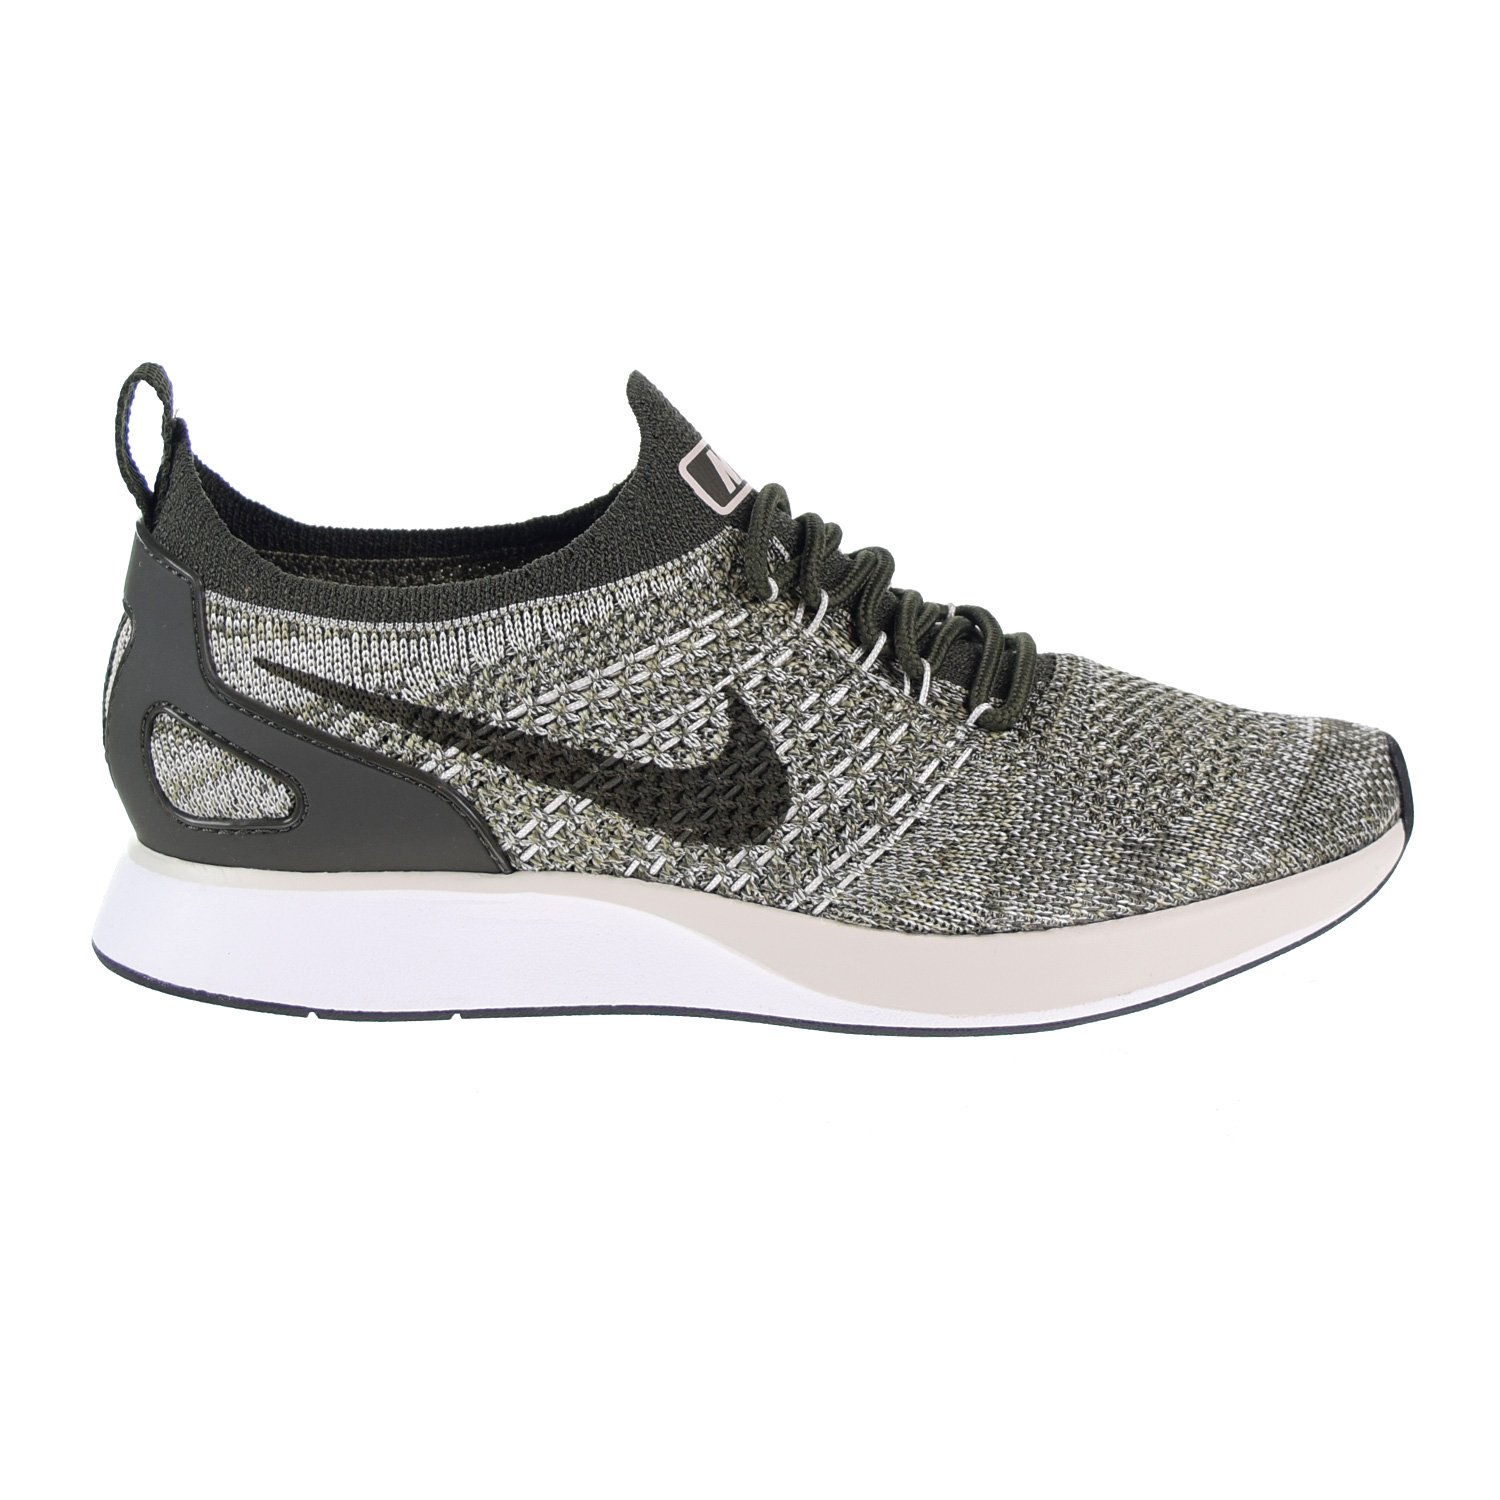 b5cc5bd759e9f Galleon - NIKE Air Zoom Mariah Flyknit Racer Women s Running Shoes Cargo  Khaki Cargo Khaki Aa0521-301 (5.5 B(M) US)